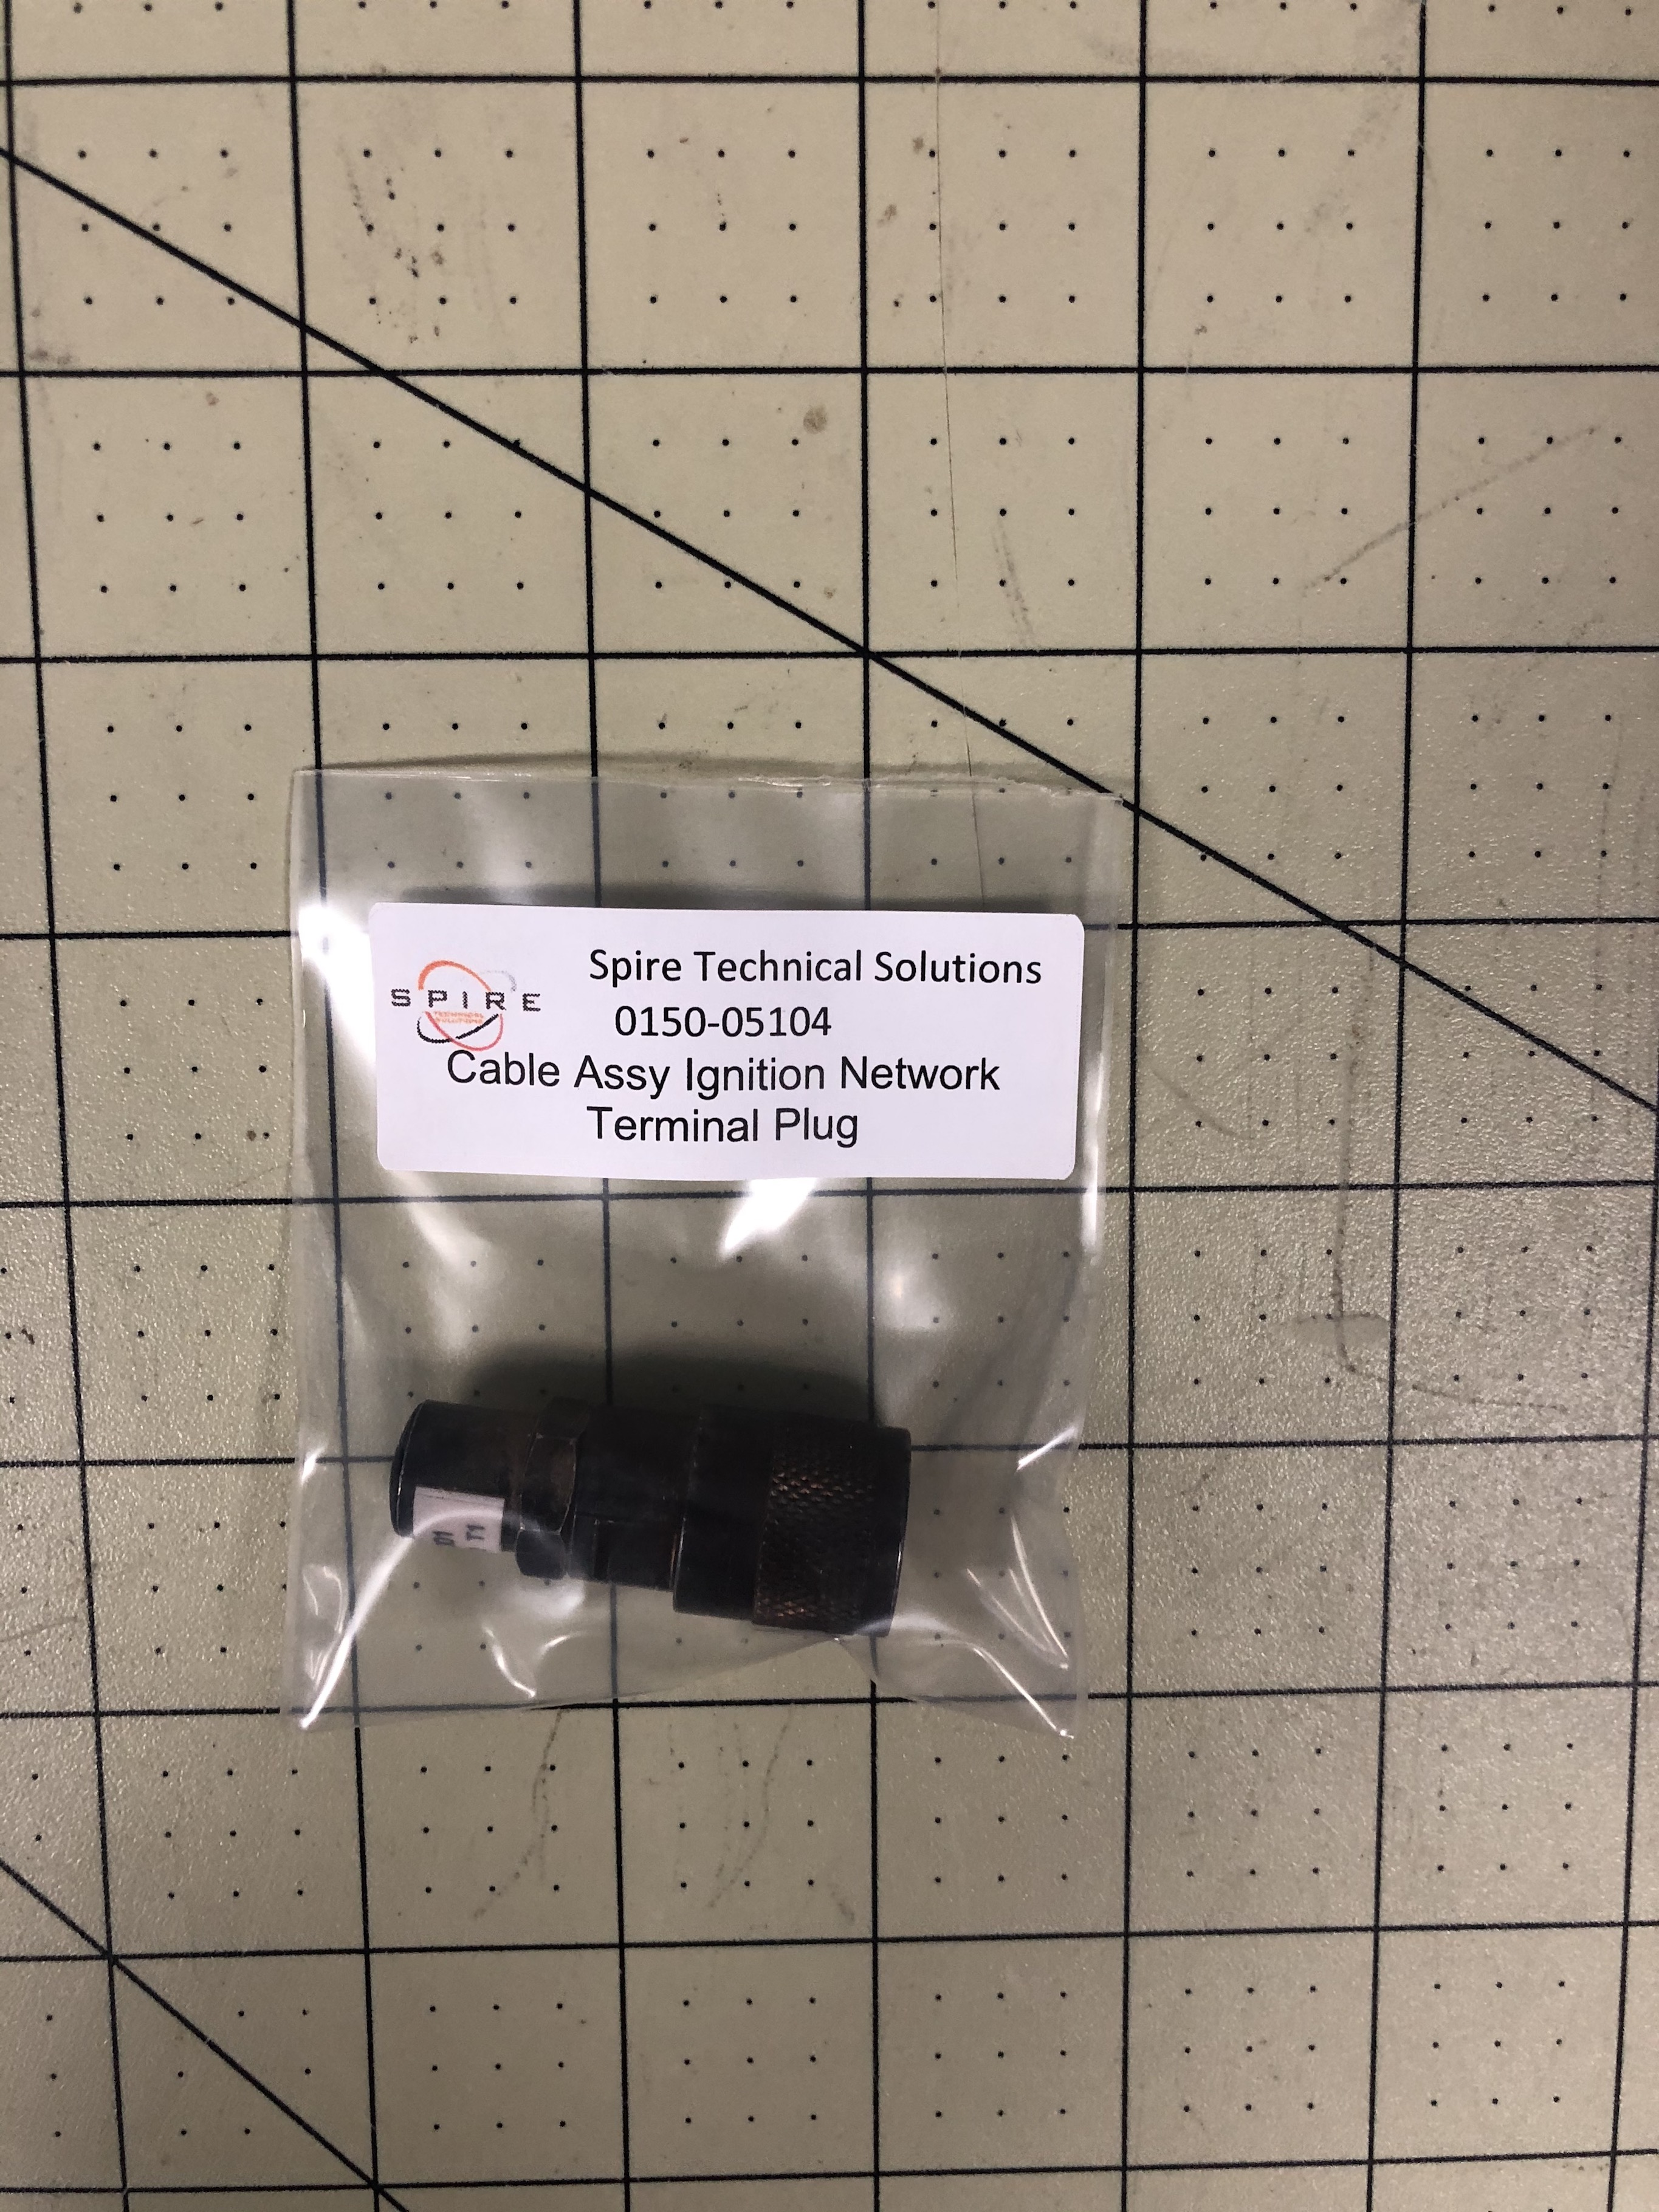 Cable Assy Ignition Network Terminal Plug